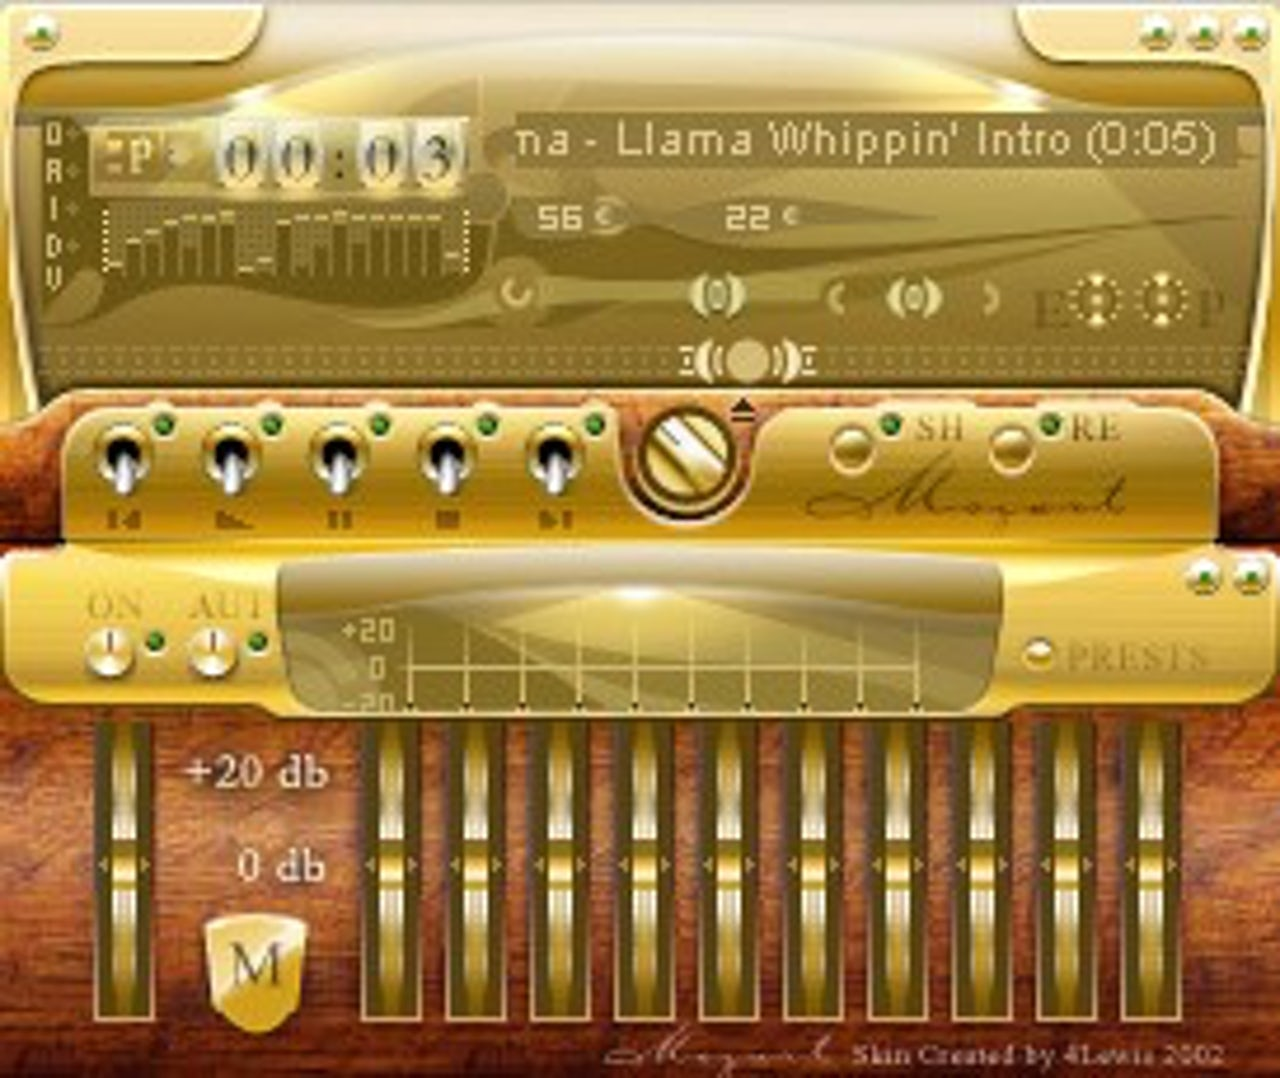 This Winamp skin evokes the glistening art deco aesthetic of the 1920s.